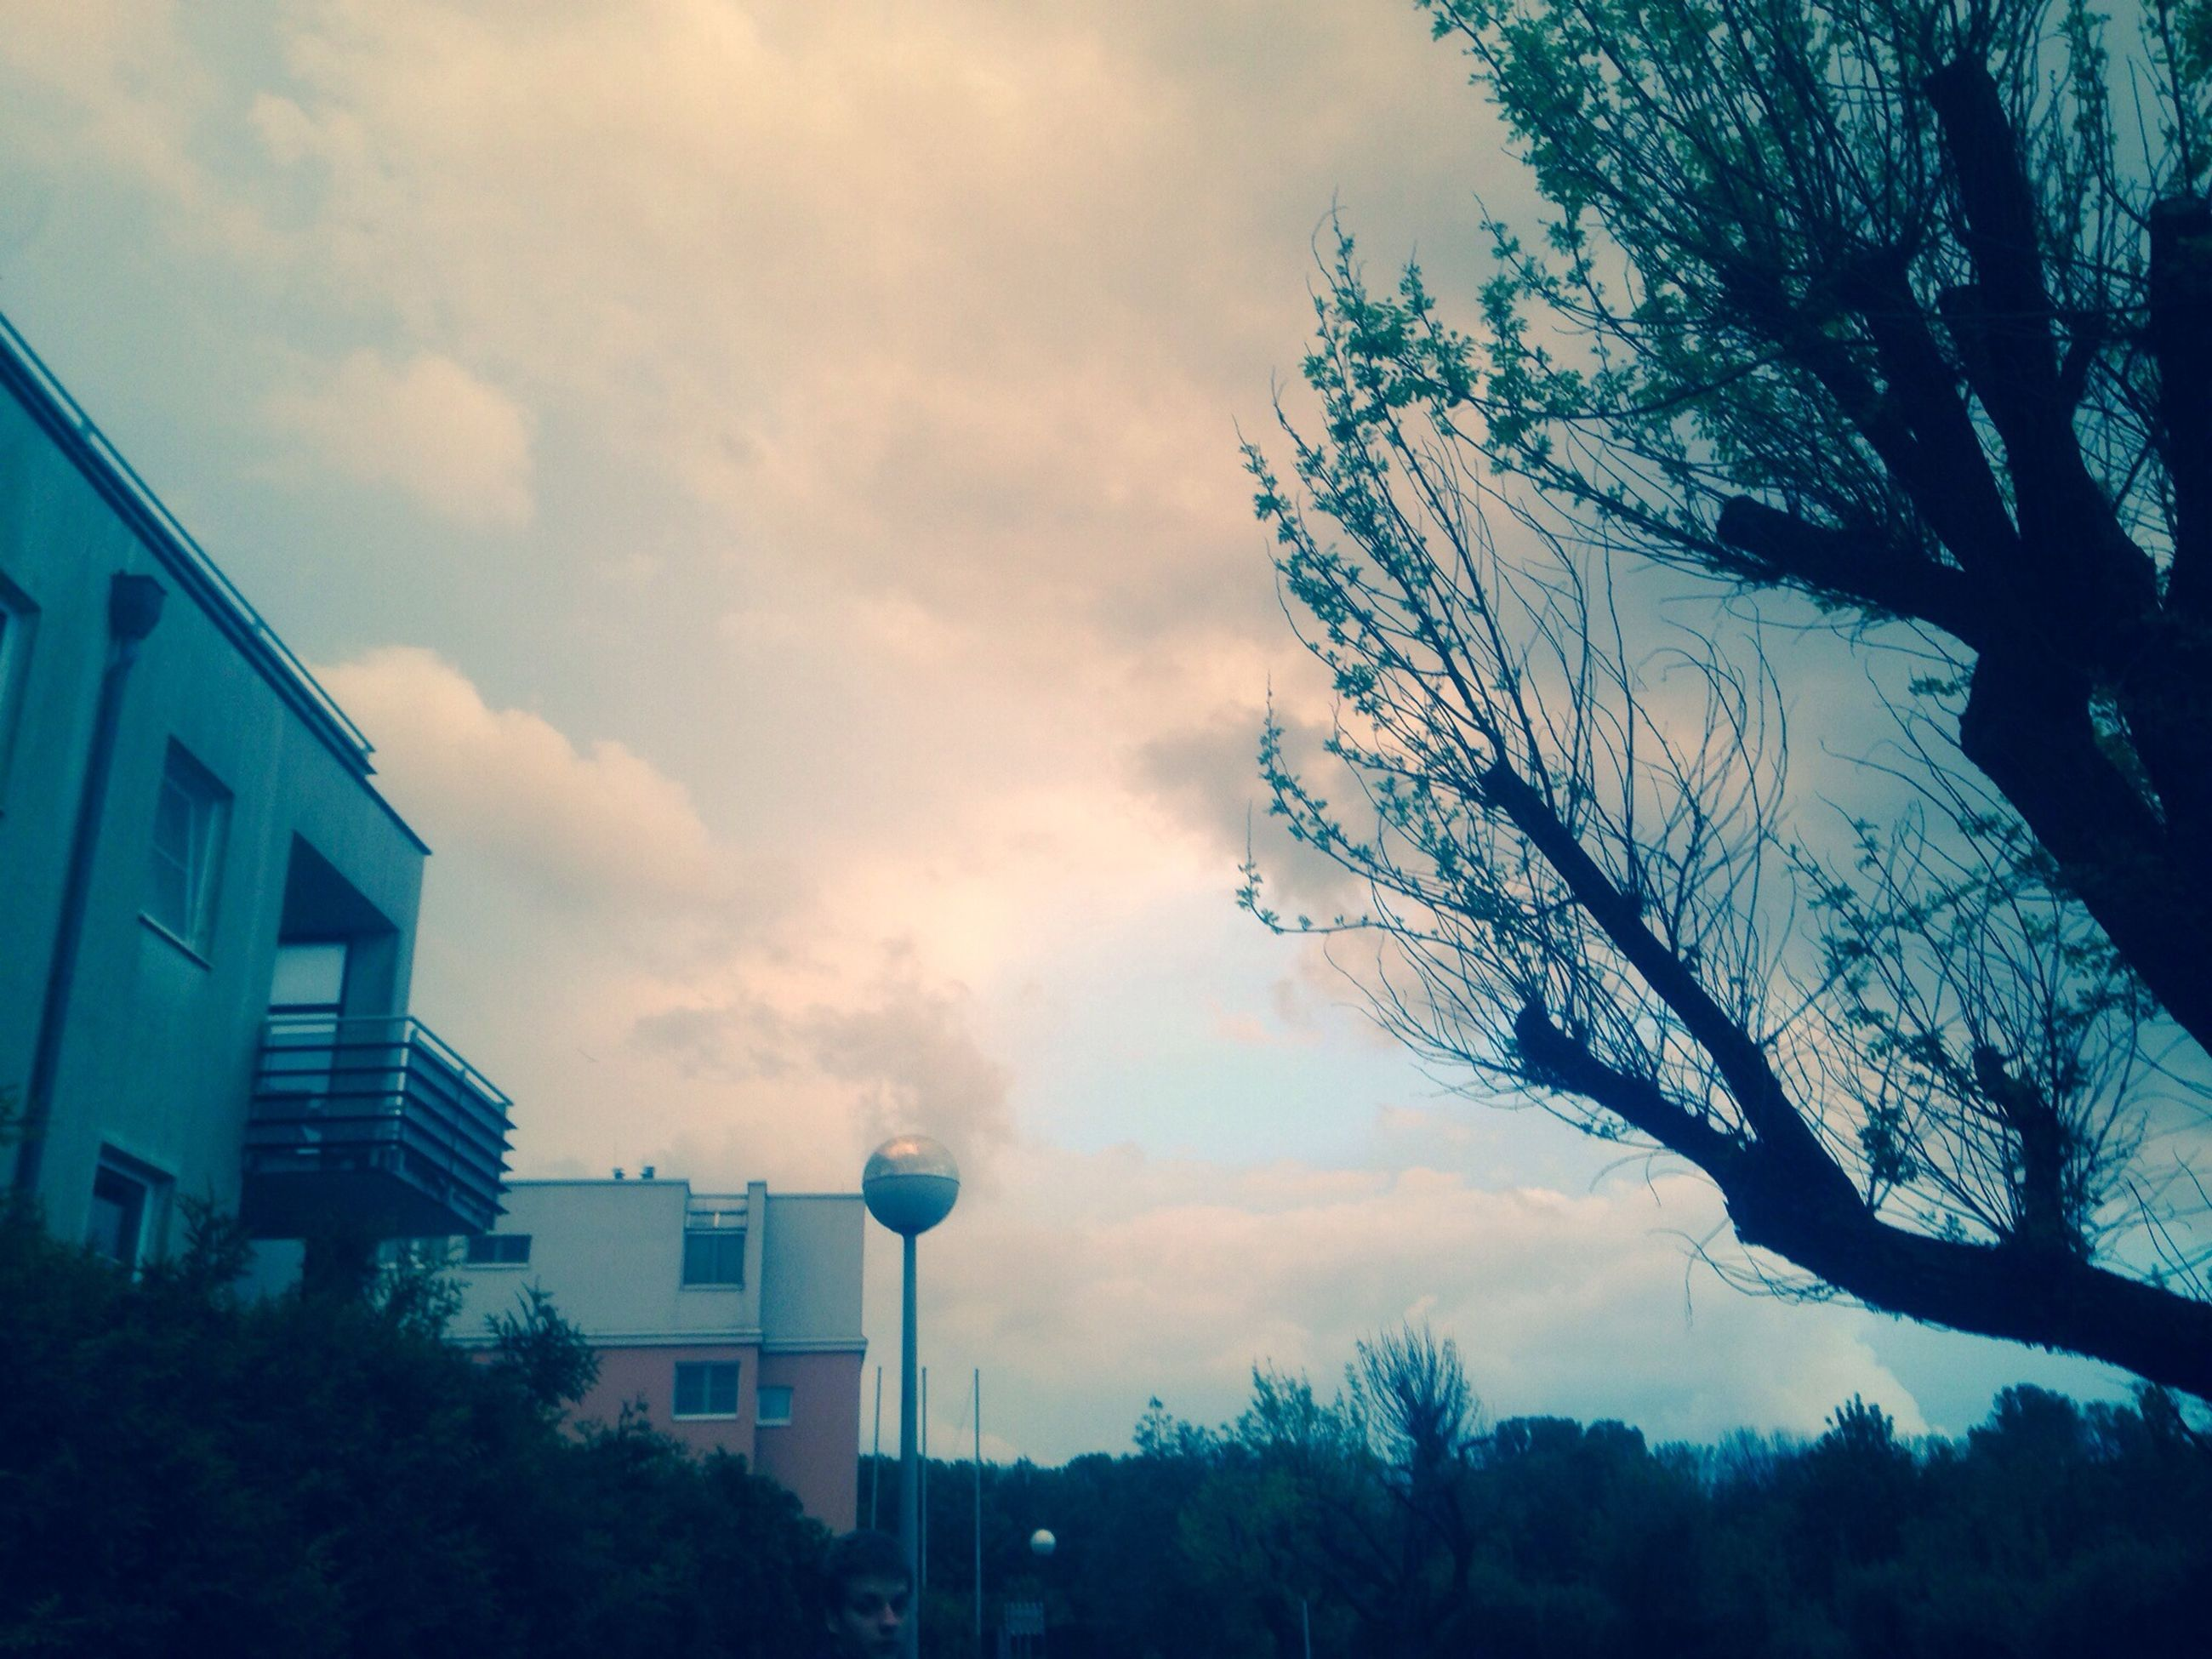 building exterior, architecture, built structure, sky, low angle view, tree, city, cloud - sky, building, silhouette, residential building, cloud, cloudy, residential structure, bare tree, branch, dusk, outdoors, city life, no people